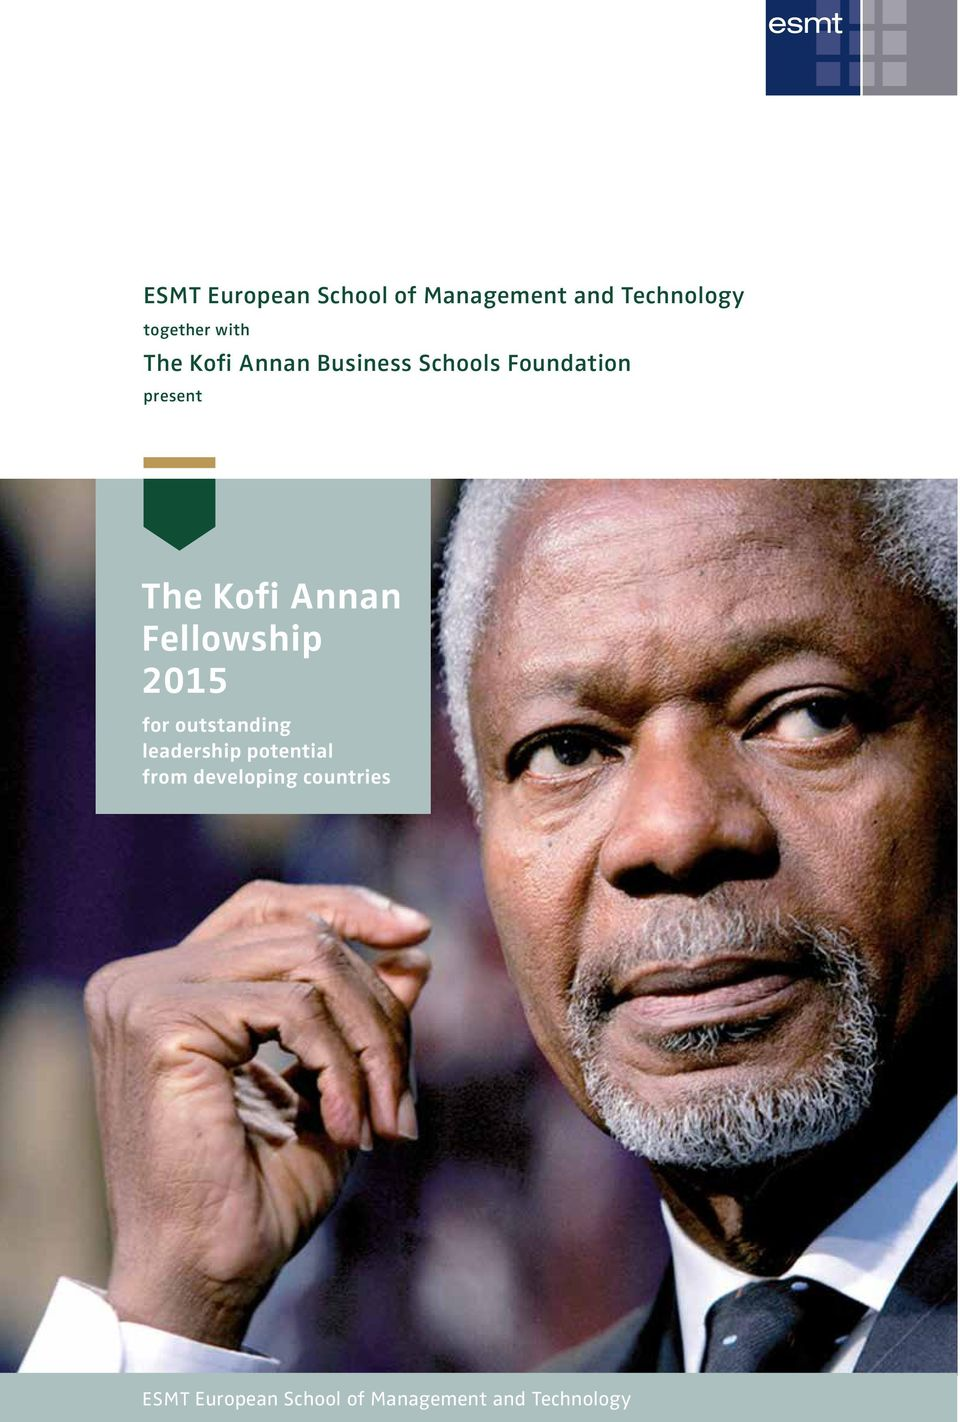 Annan Fellowship 2015 for outstanding leadership potential from